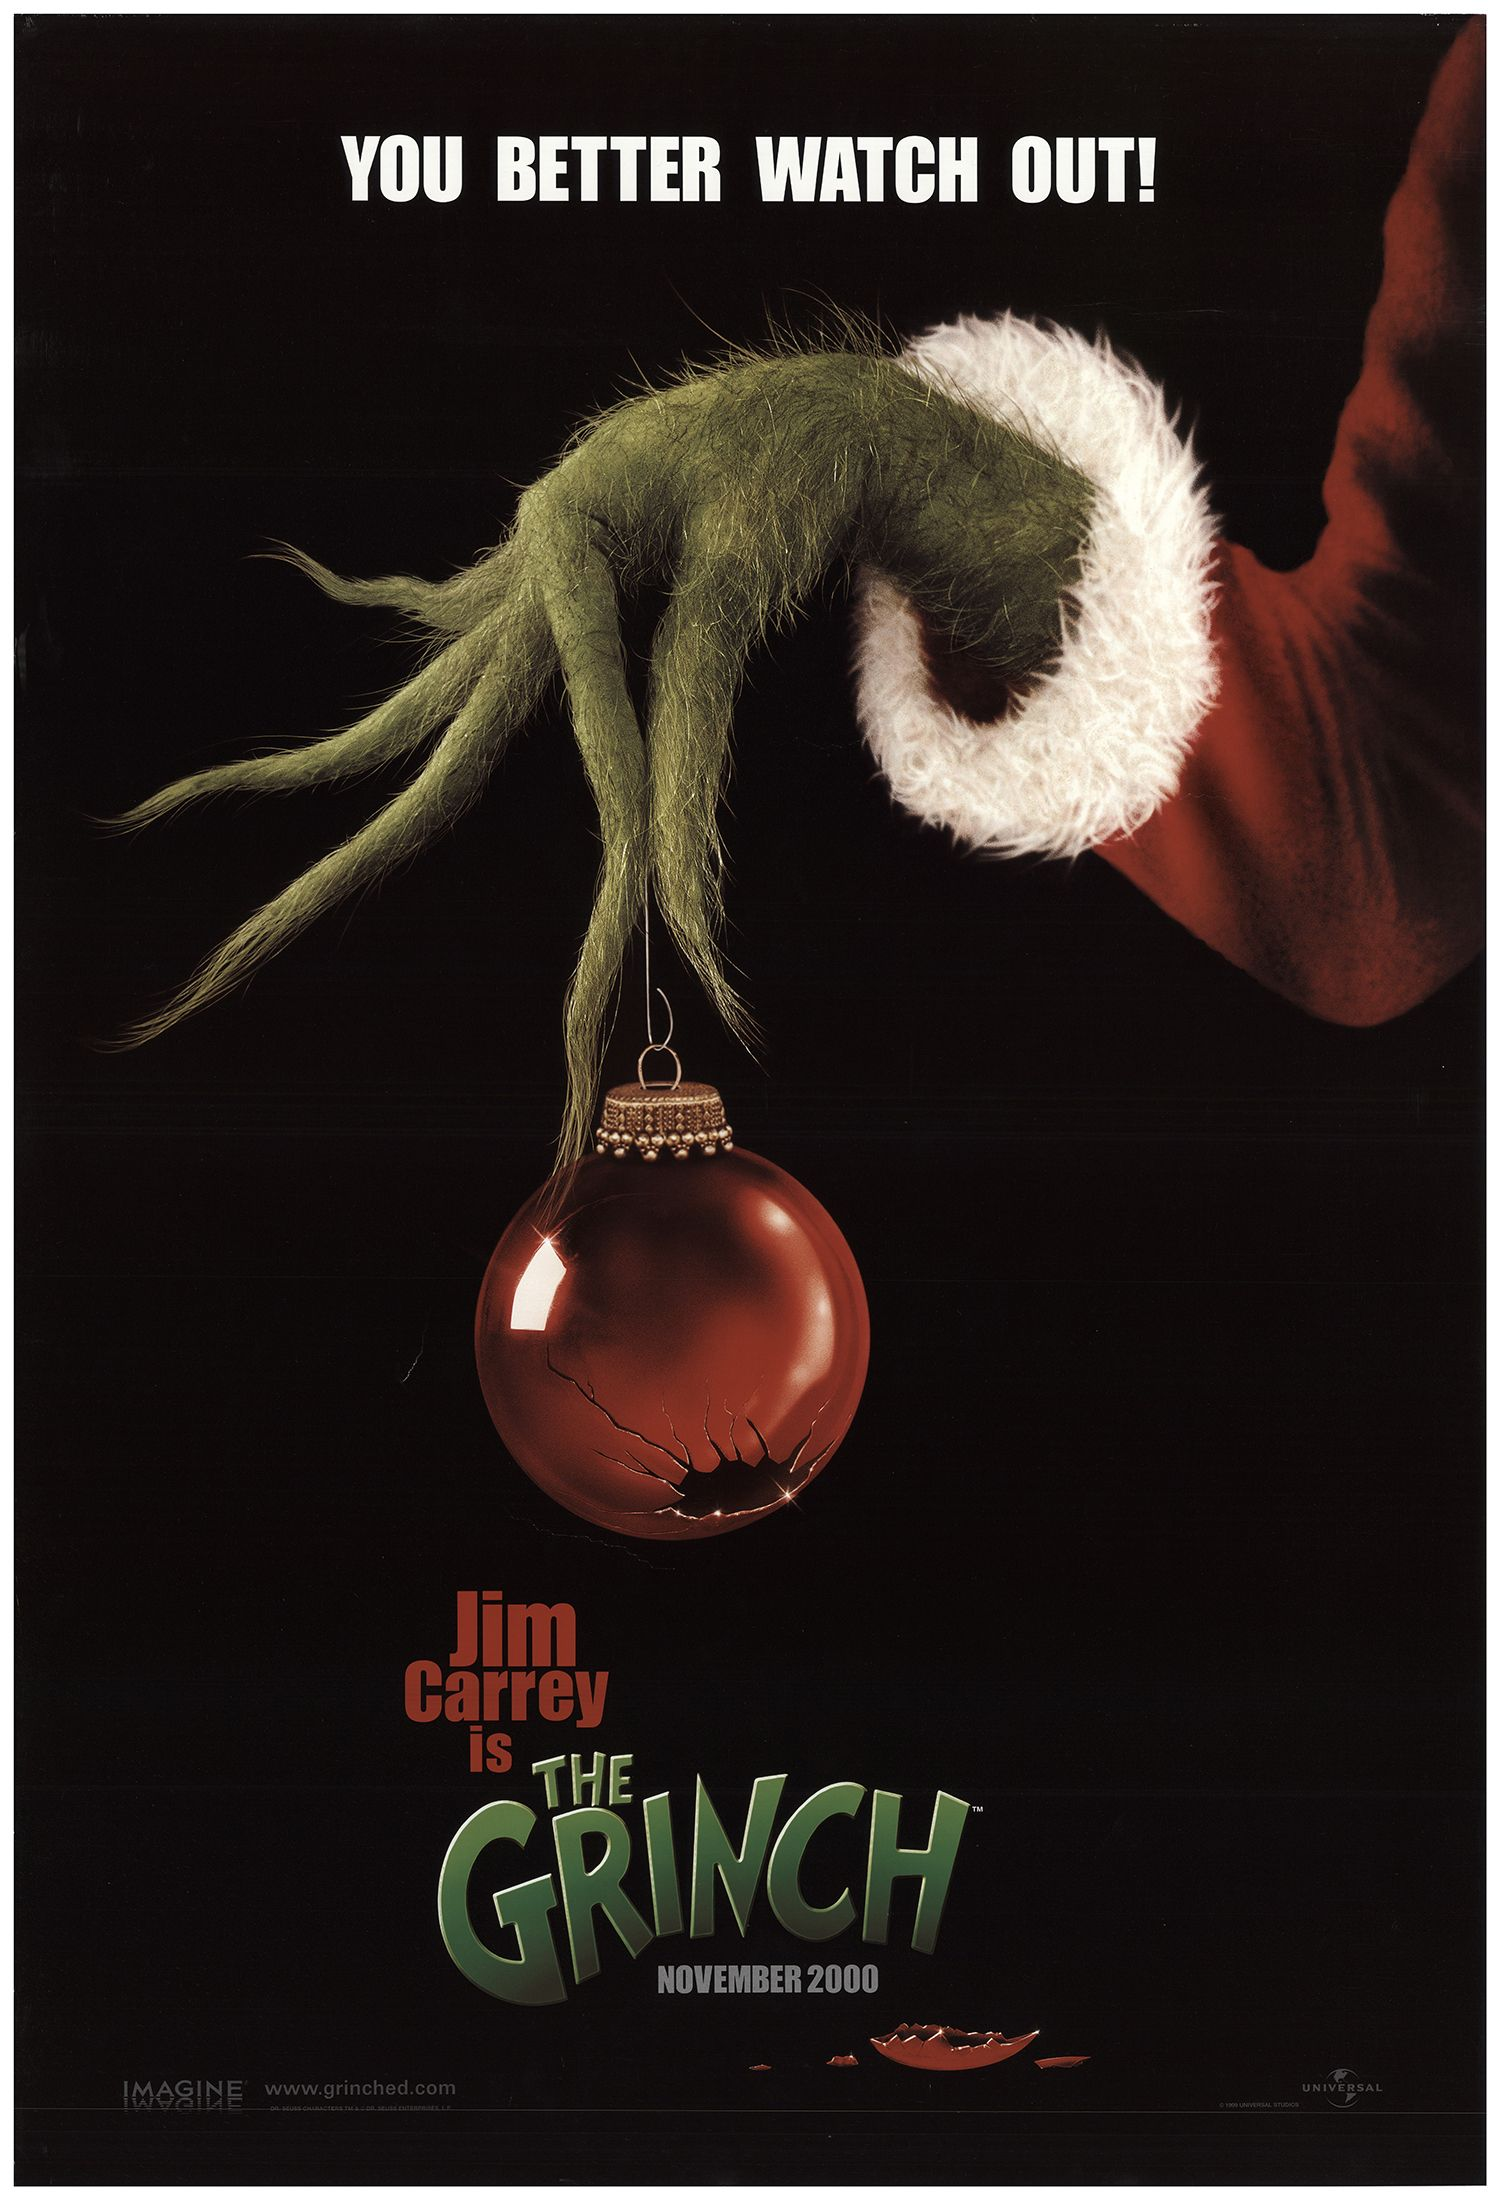 How The Grinch Stole Christmas 2020 Impawards How the Grinch Stole Christmas 2000 Original Movie Poster #FFF